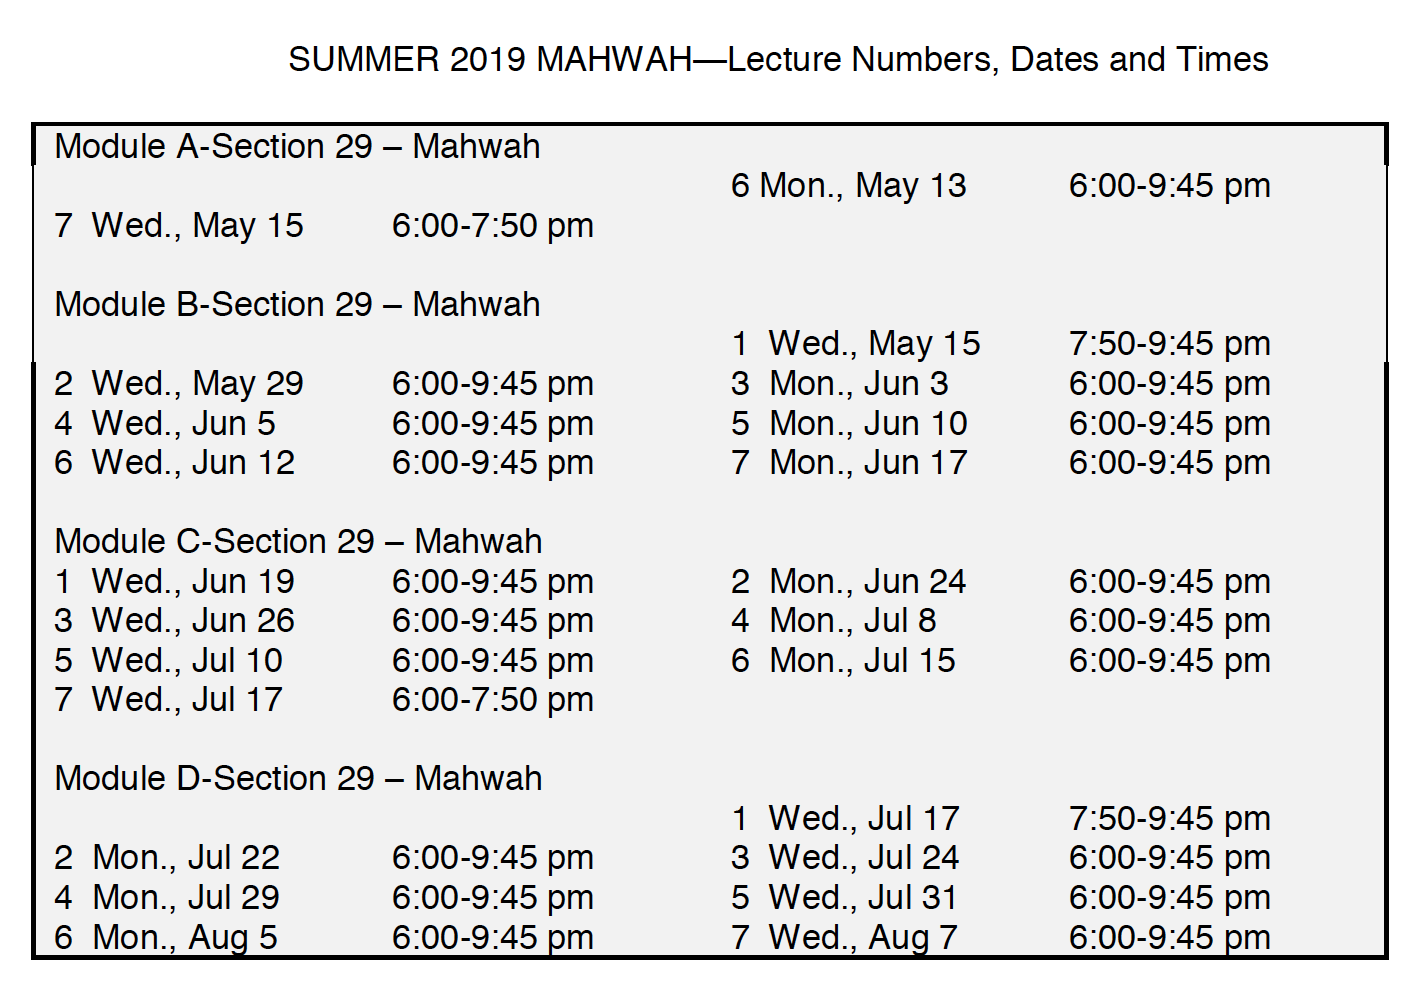 Summer Schedule in Mahwah - call for details